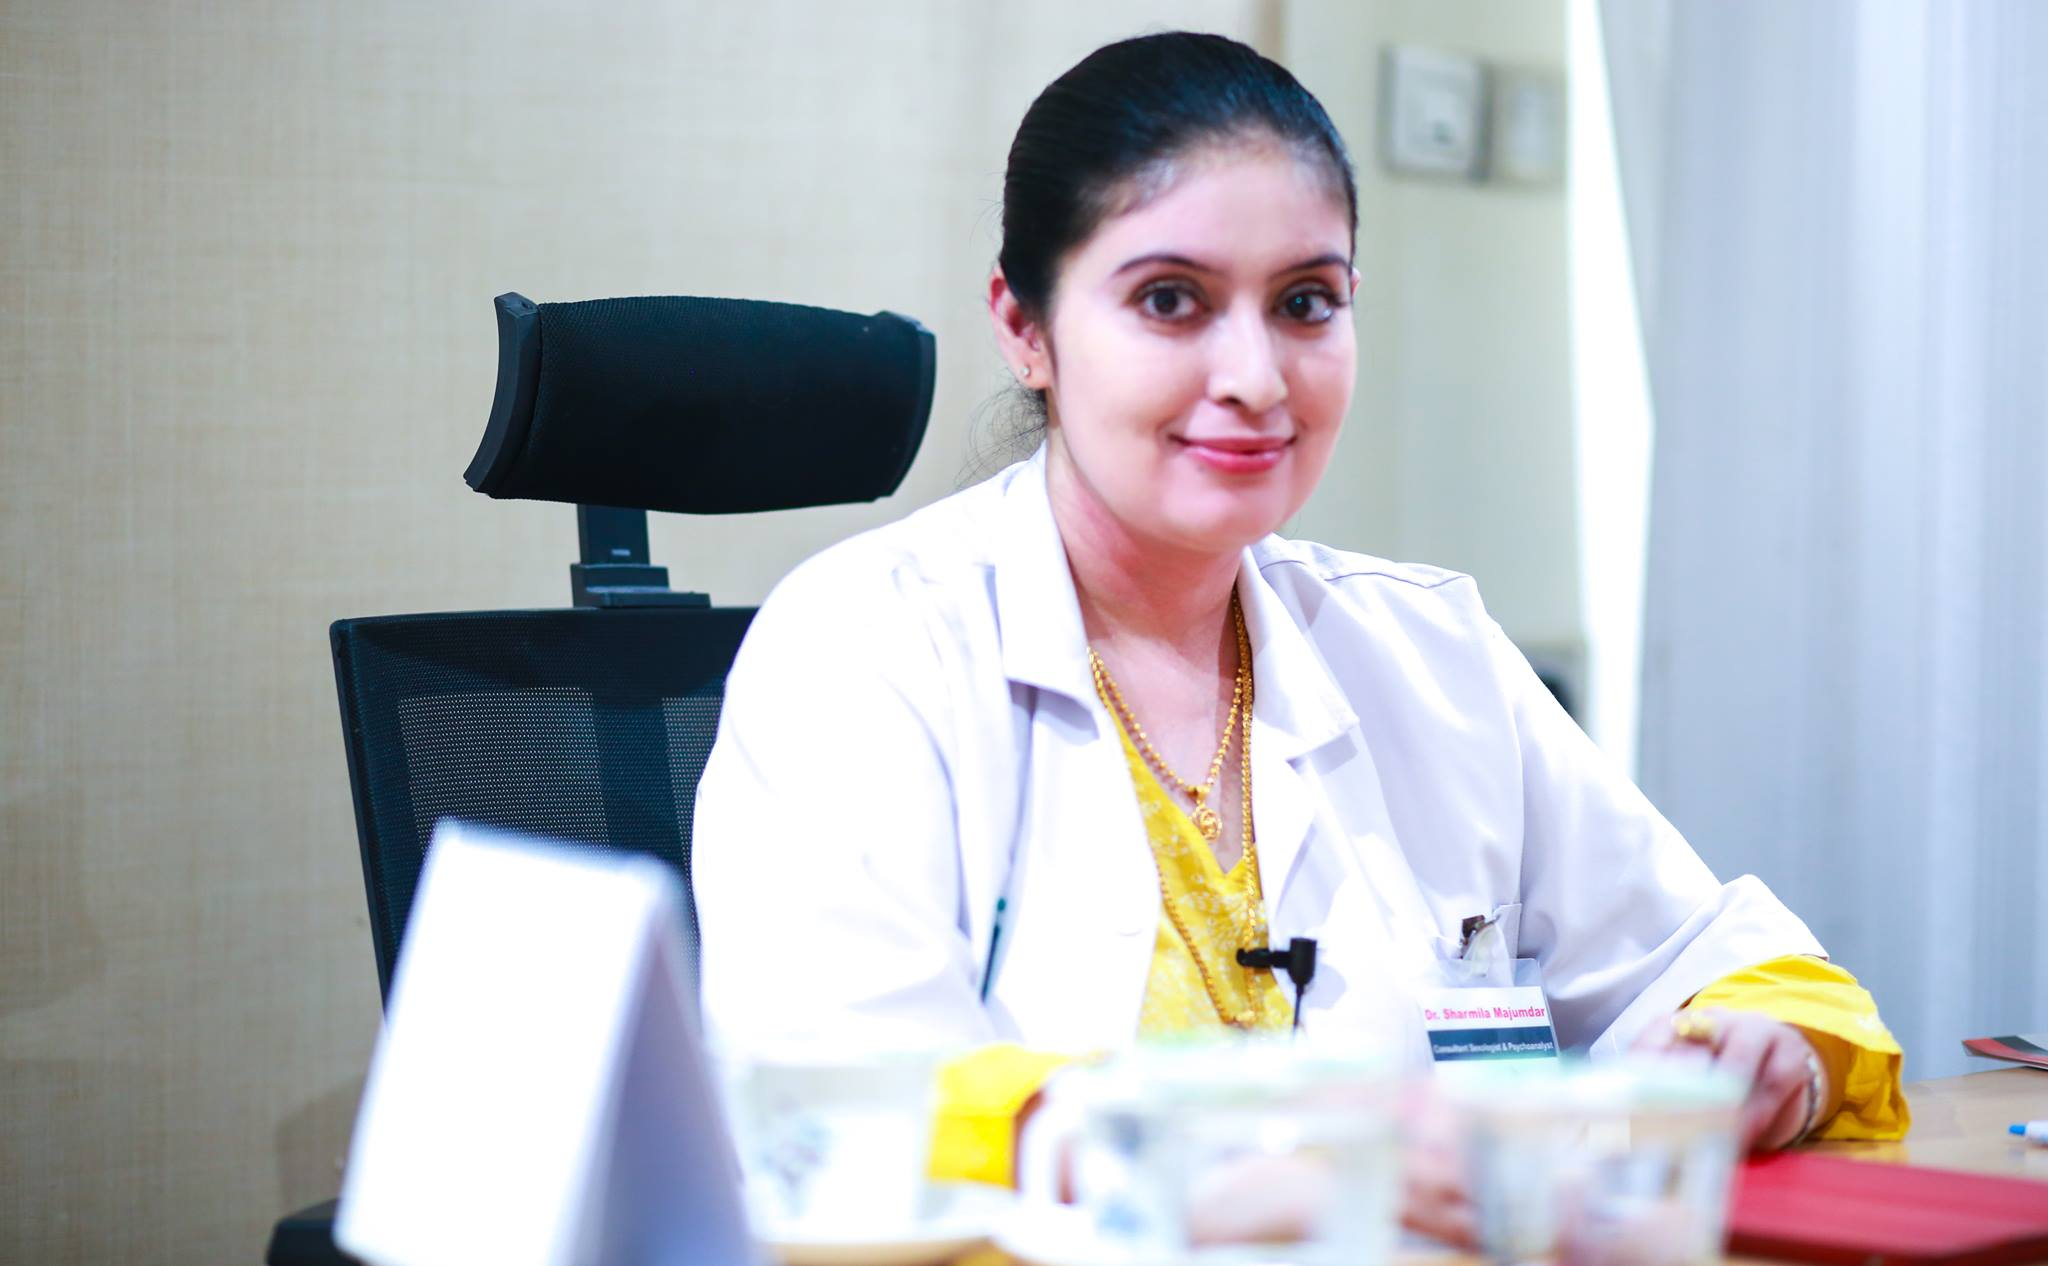 Dr Sharmila Majumdar - Sexologist Hyderabad - My Clinic